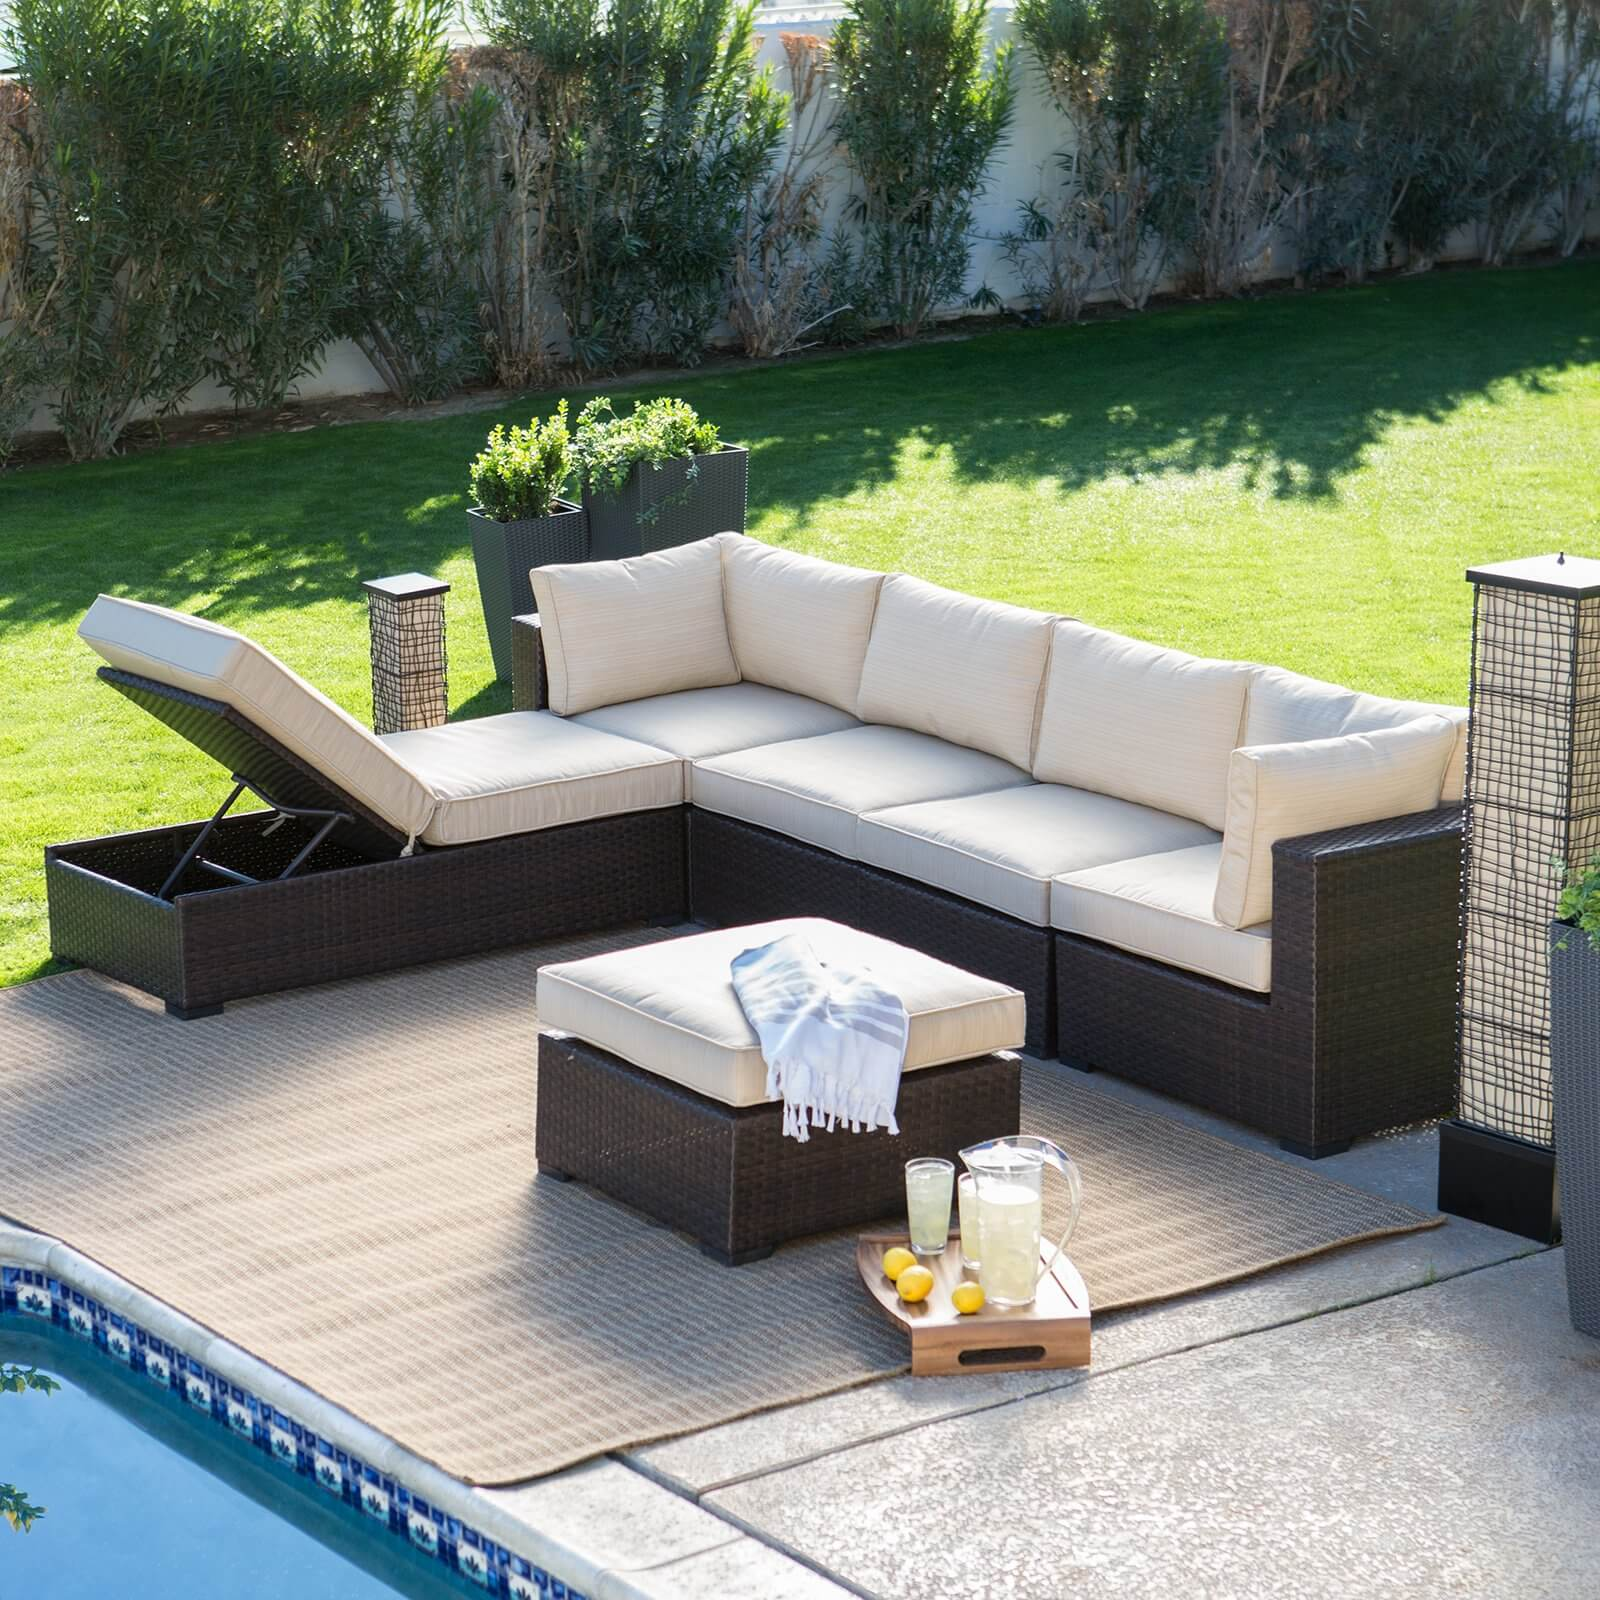 Lounge Sofa Outdoor : 25 awesome modern brown all weather outdoor patio sectionals ~ Markanthonyermac.com Haus und Dekorationen